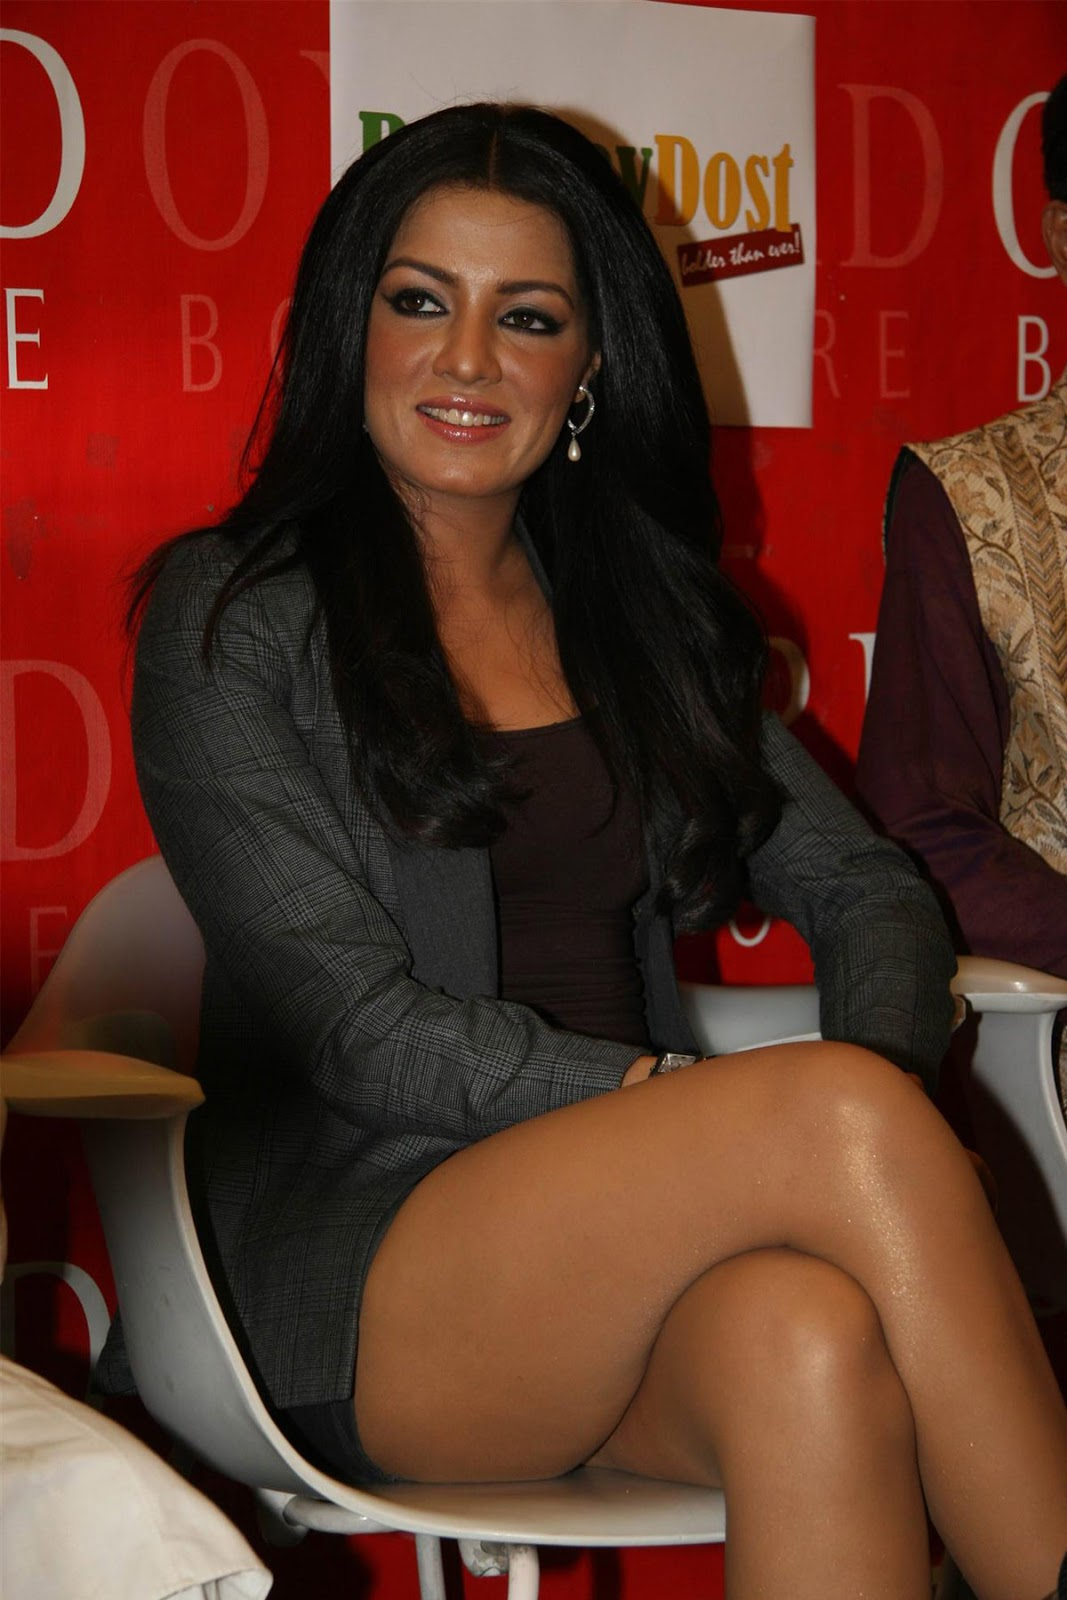 image Bollywood actress wardrobe malfunction